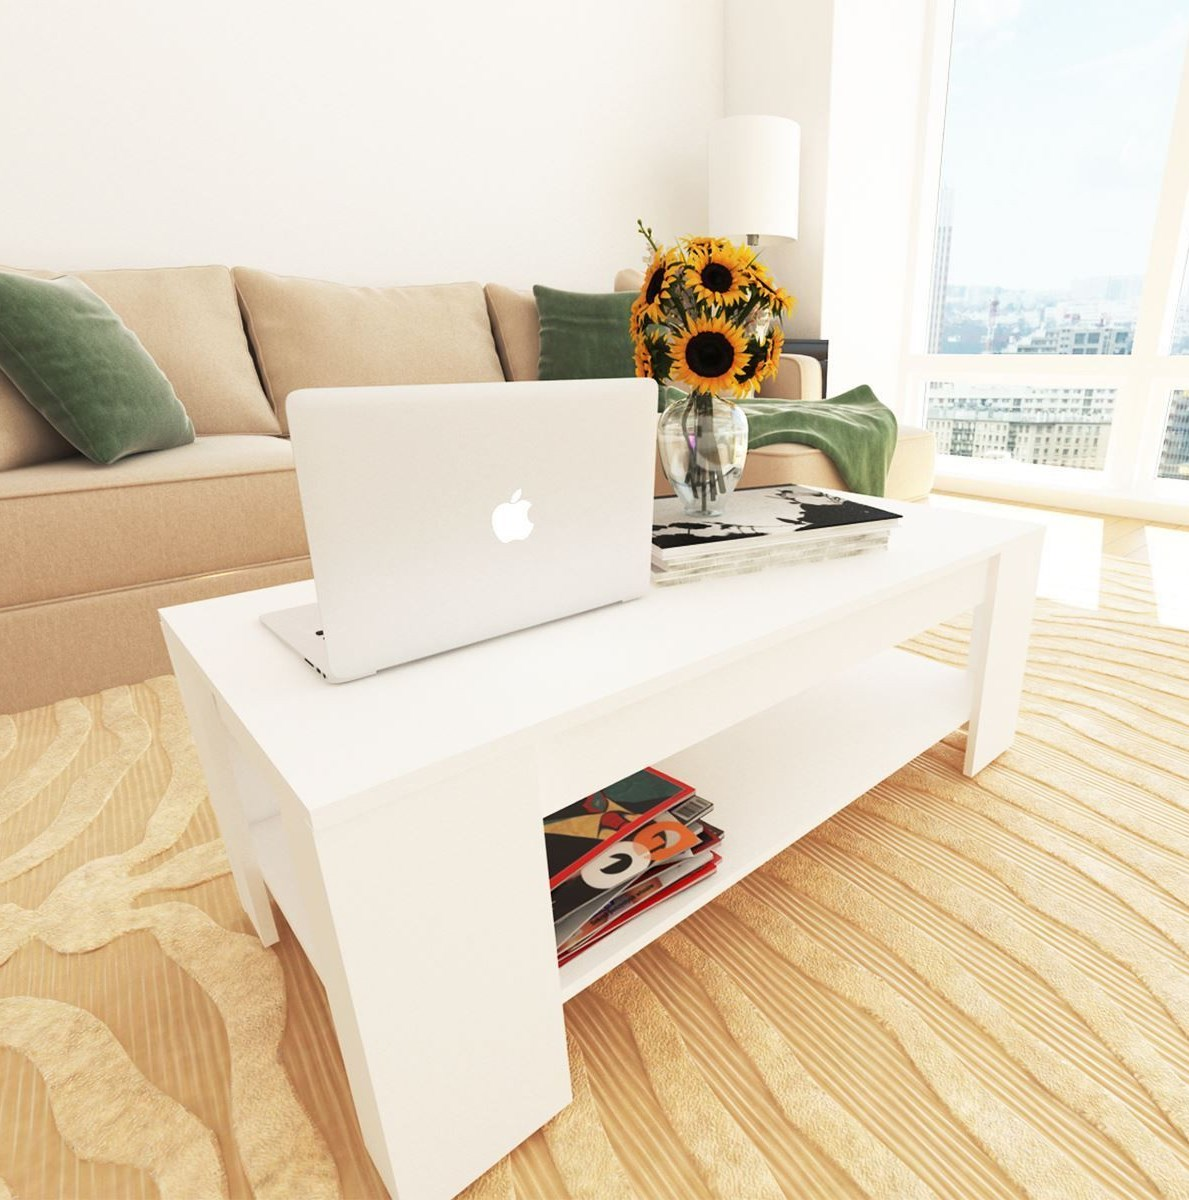 White Lift Up Coffee Table.Details About New Caspian White Lift Up Top Coffee Table With Storage Shelf